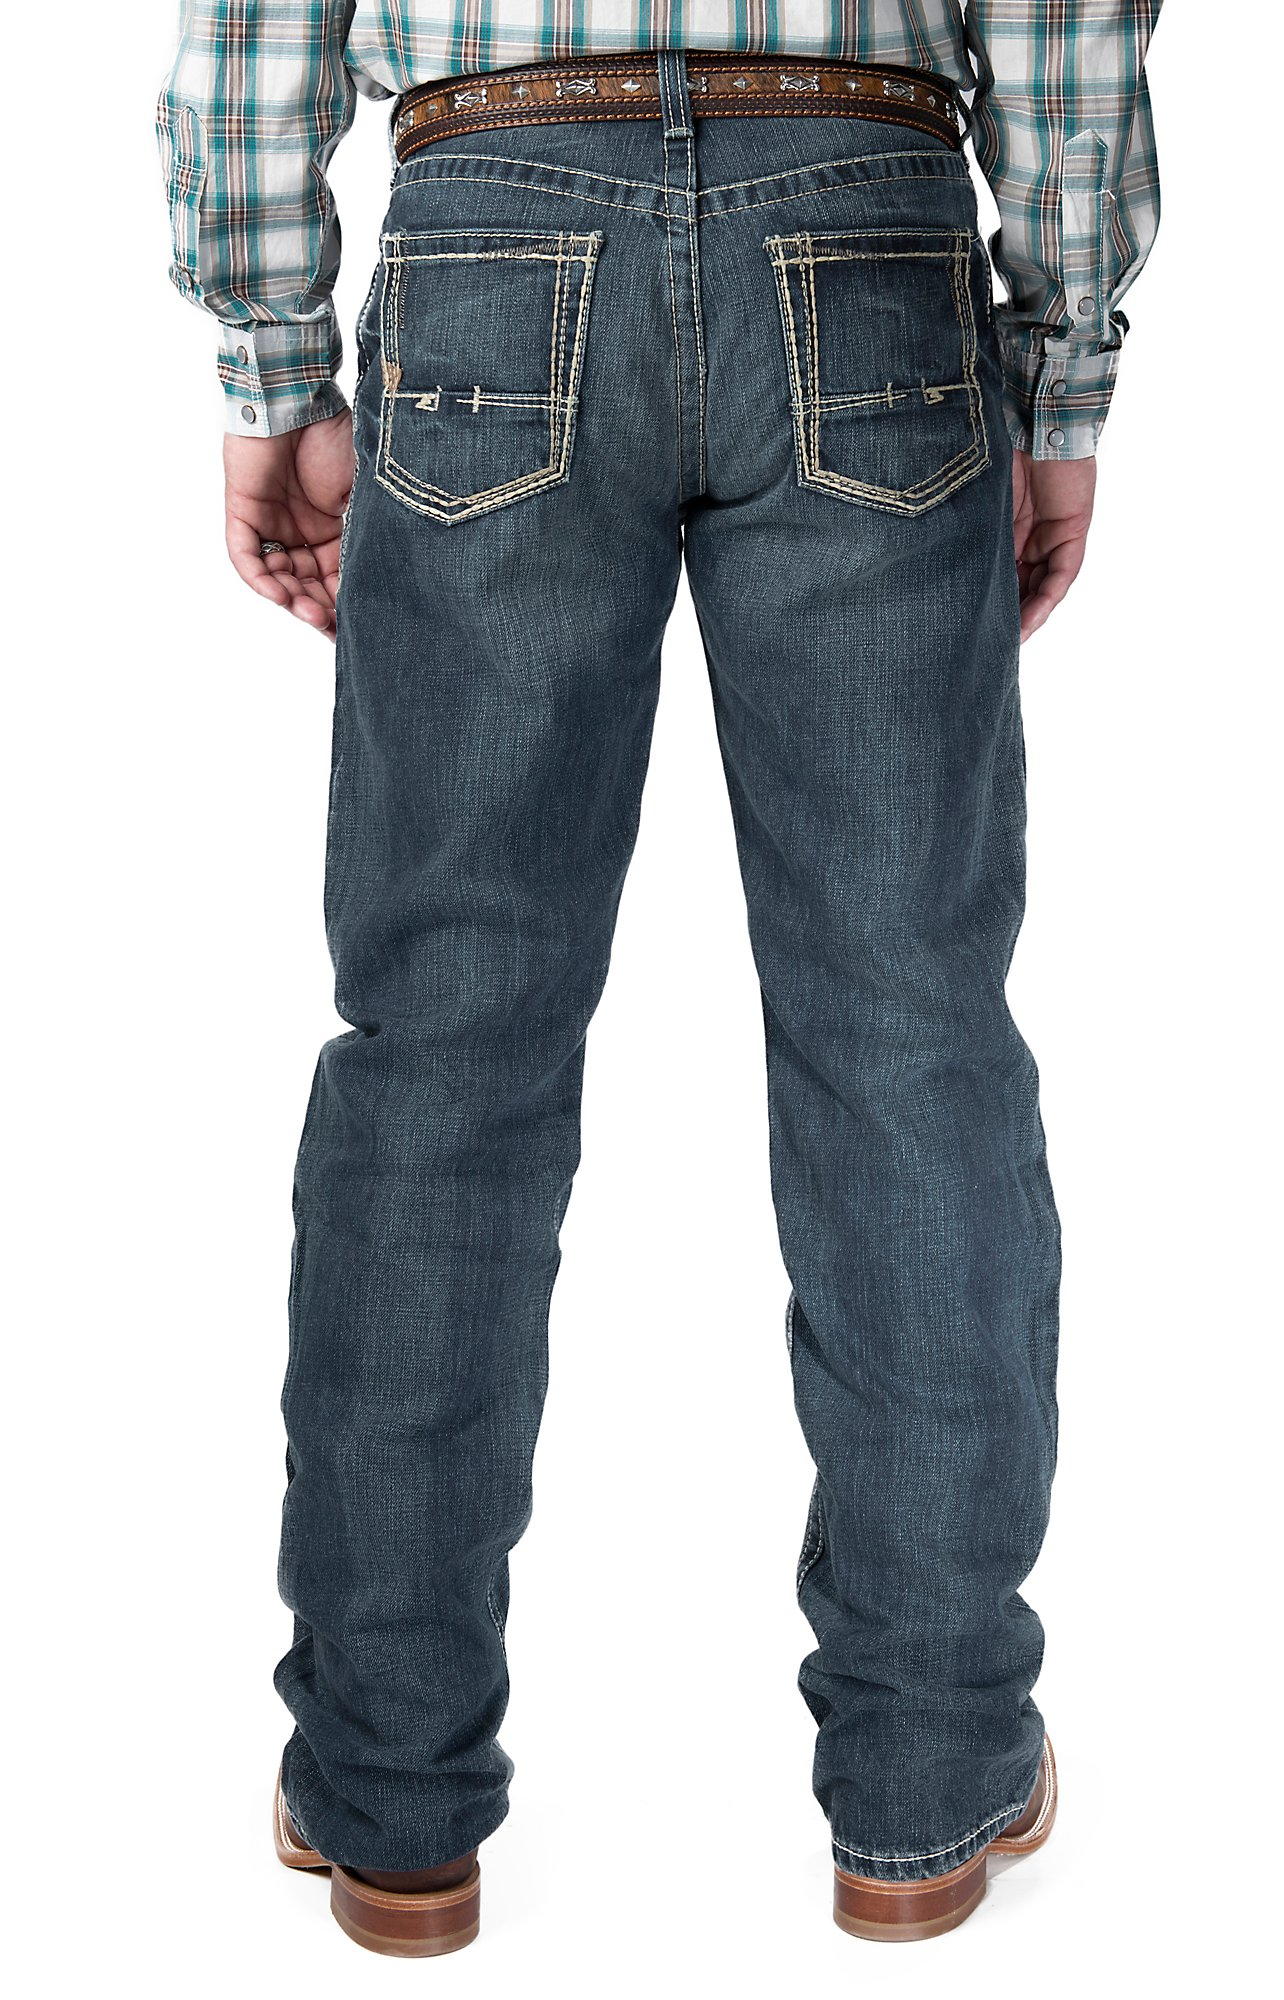 Create a cow boy look with ariat jeans